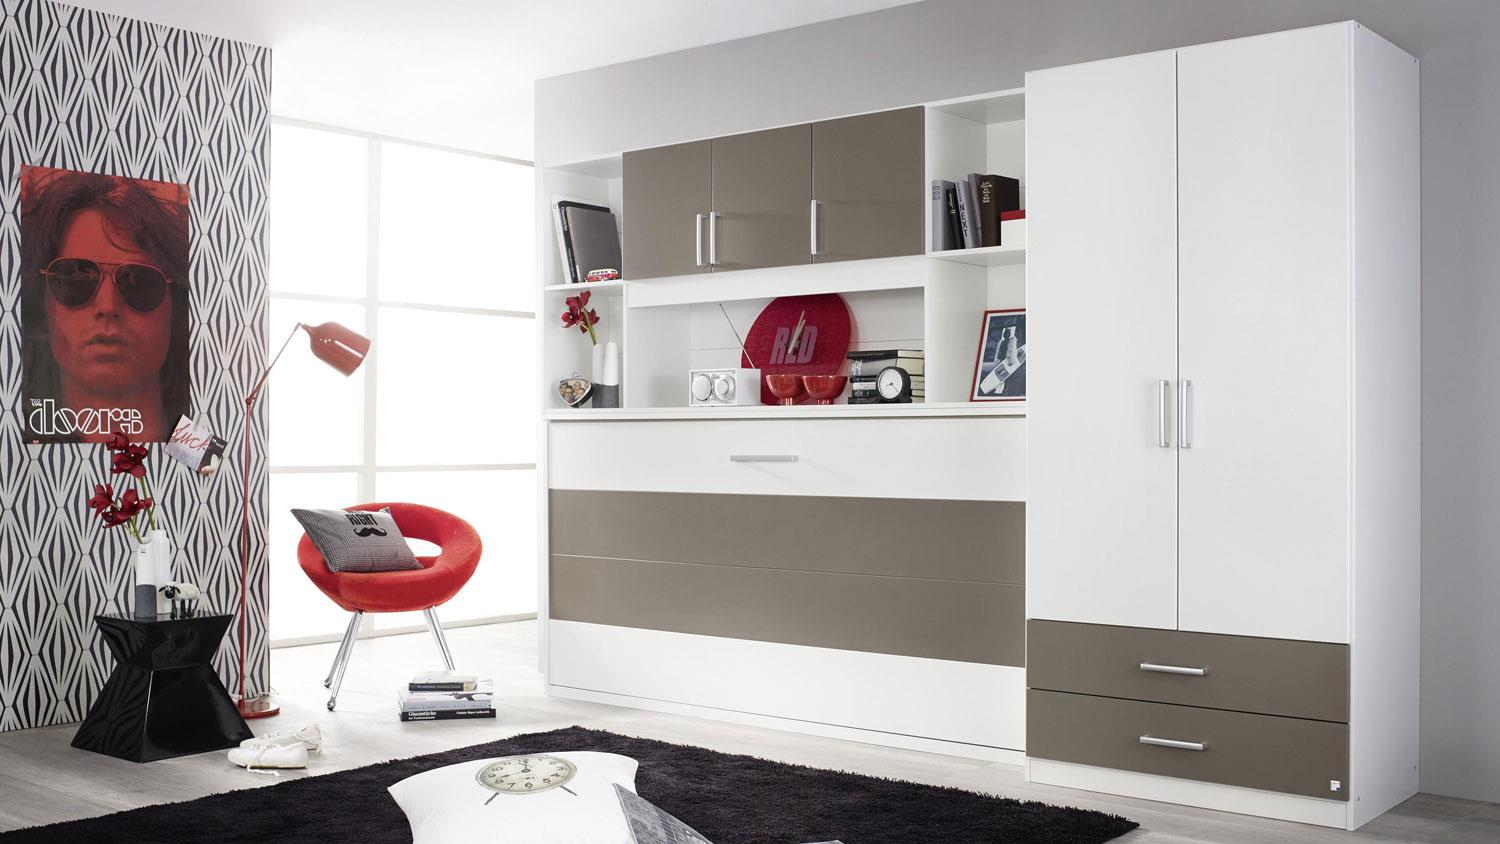 schrankbett albero kleiderschrank bett berbau in wei lavagrau 90x200. Black Bedroom Furniture Sets. Home Design Ideas